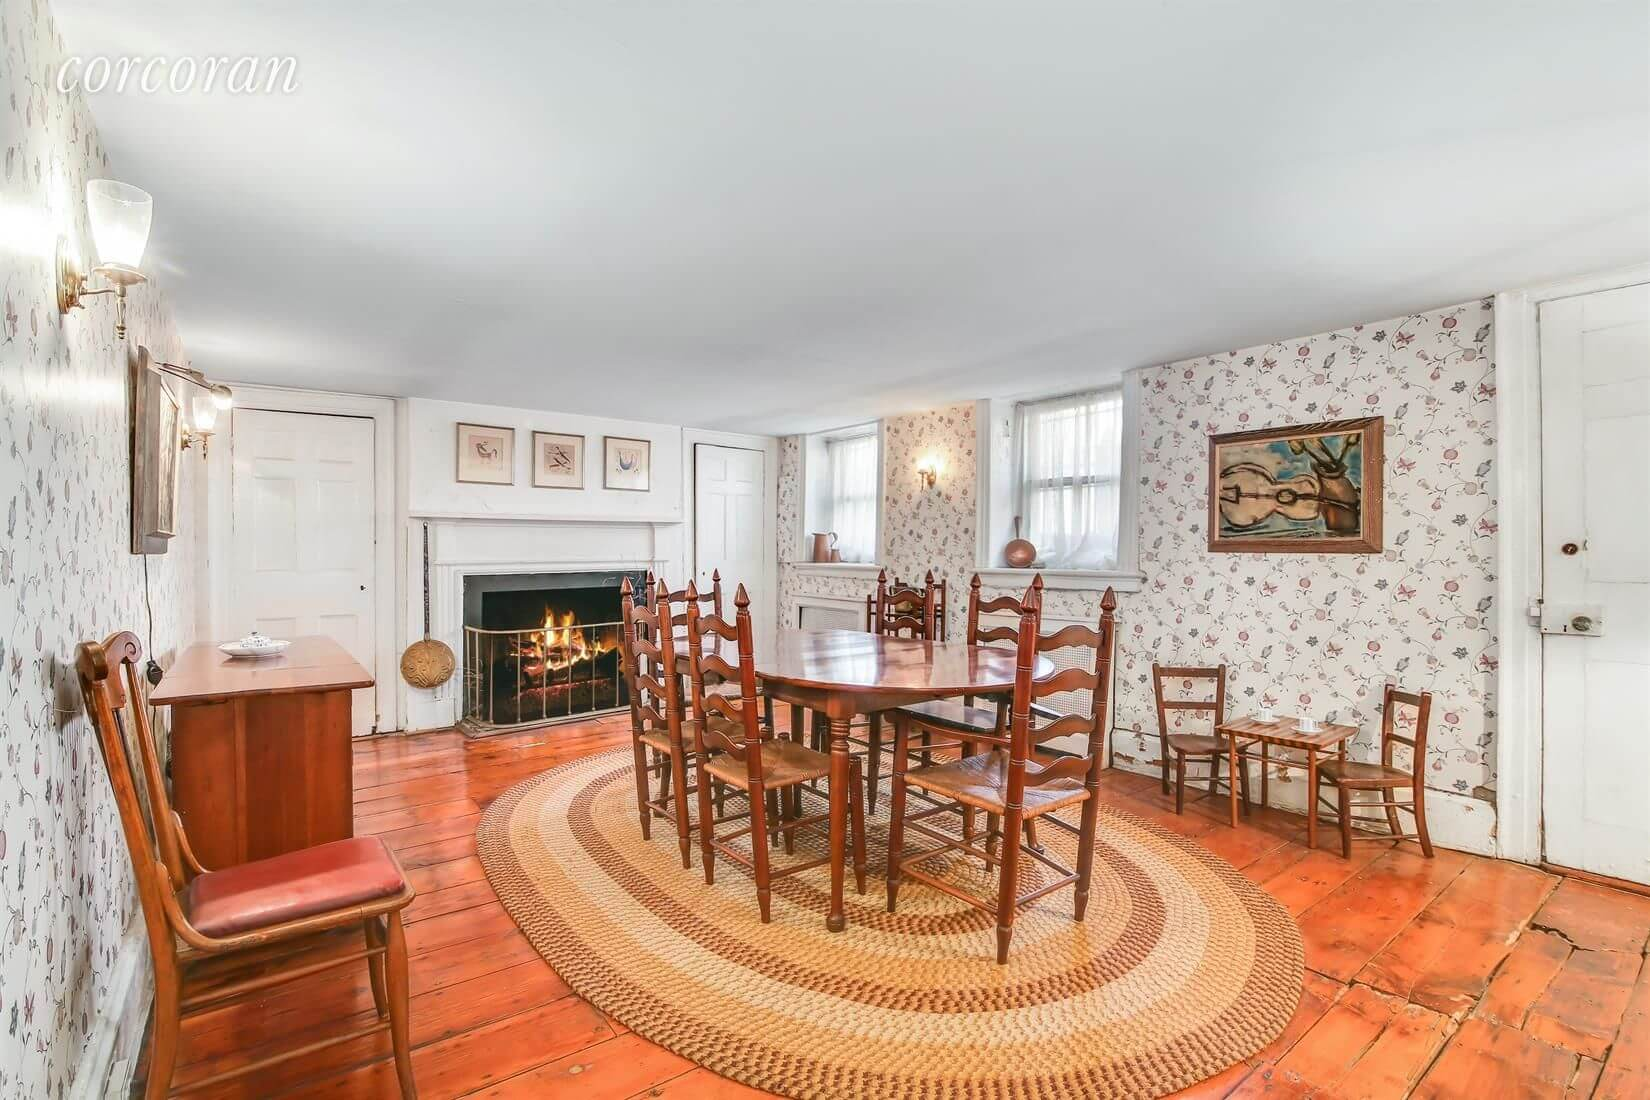 Brooklyn Homes for Sale in Brooklyn Heights at 24 Middagh Street